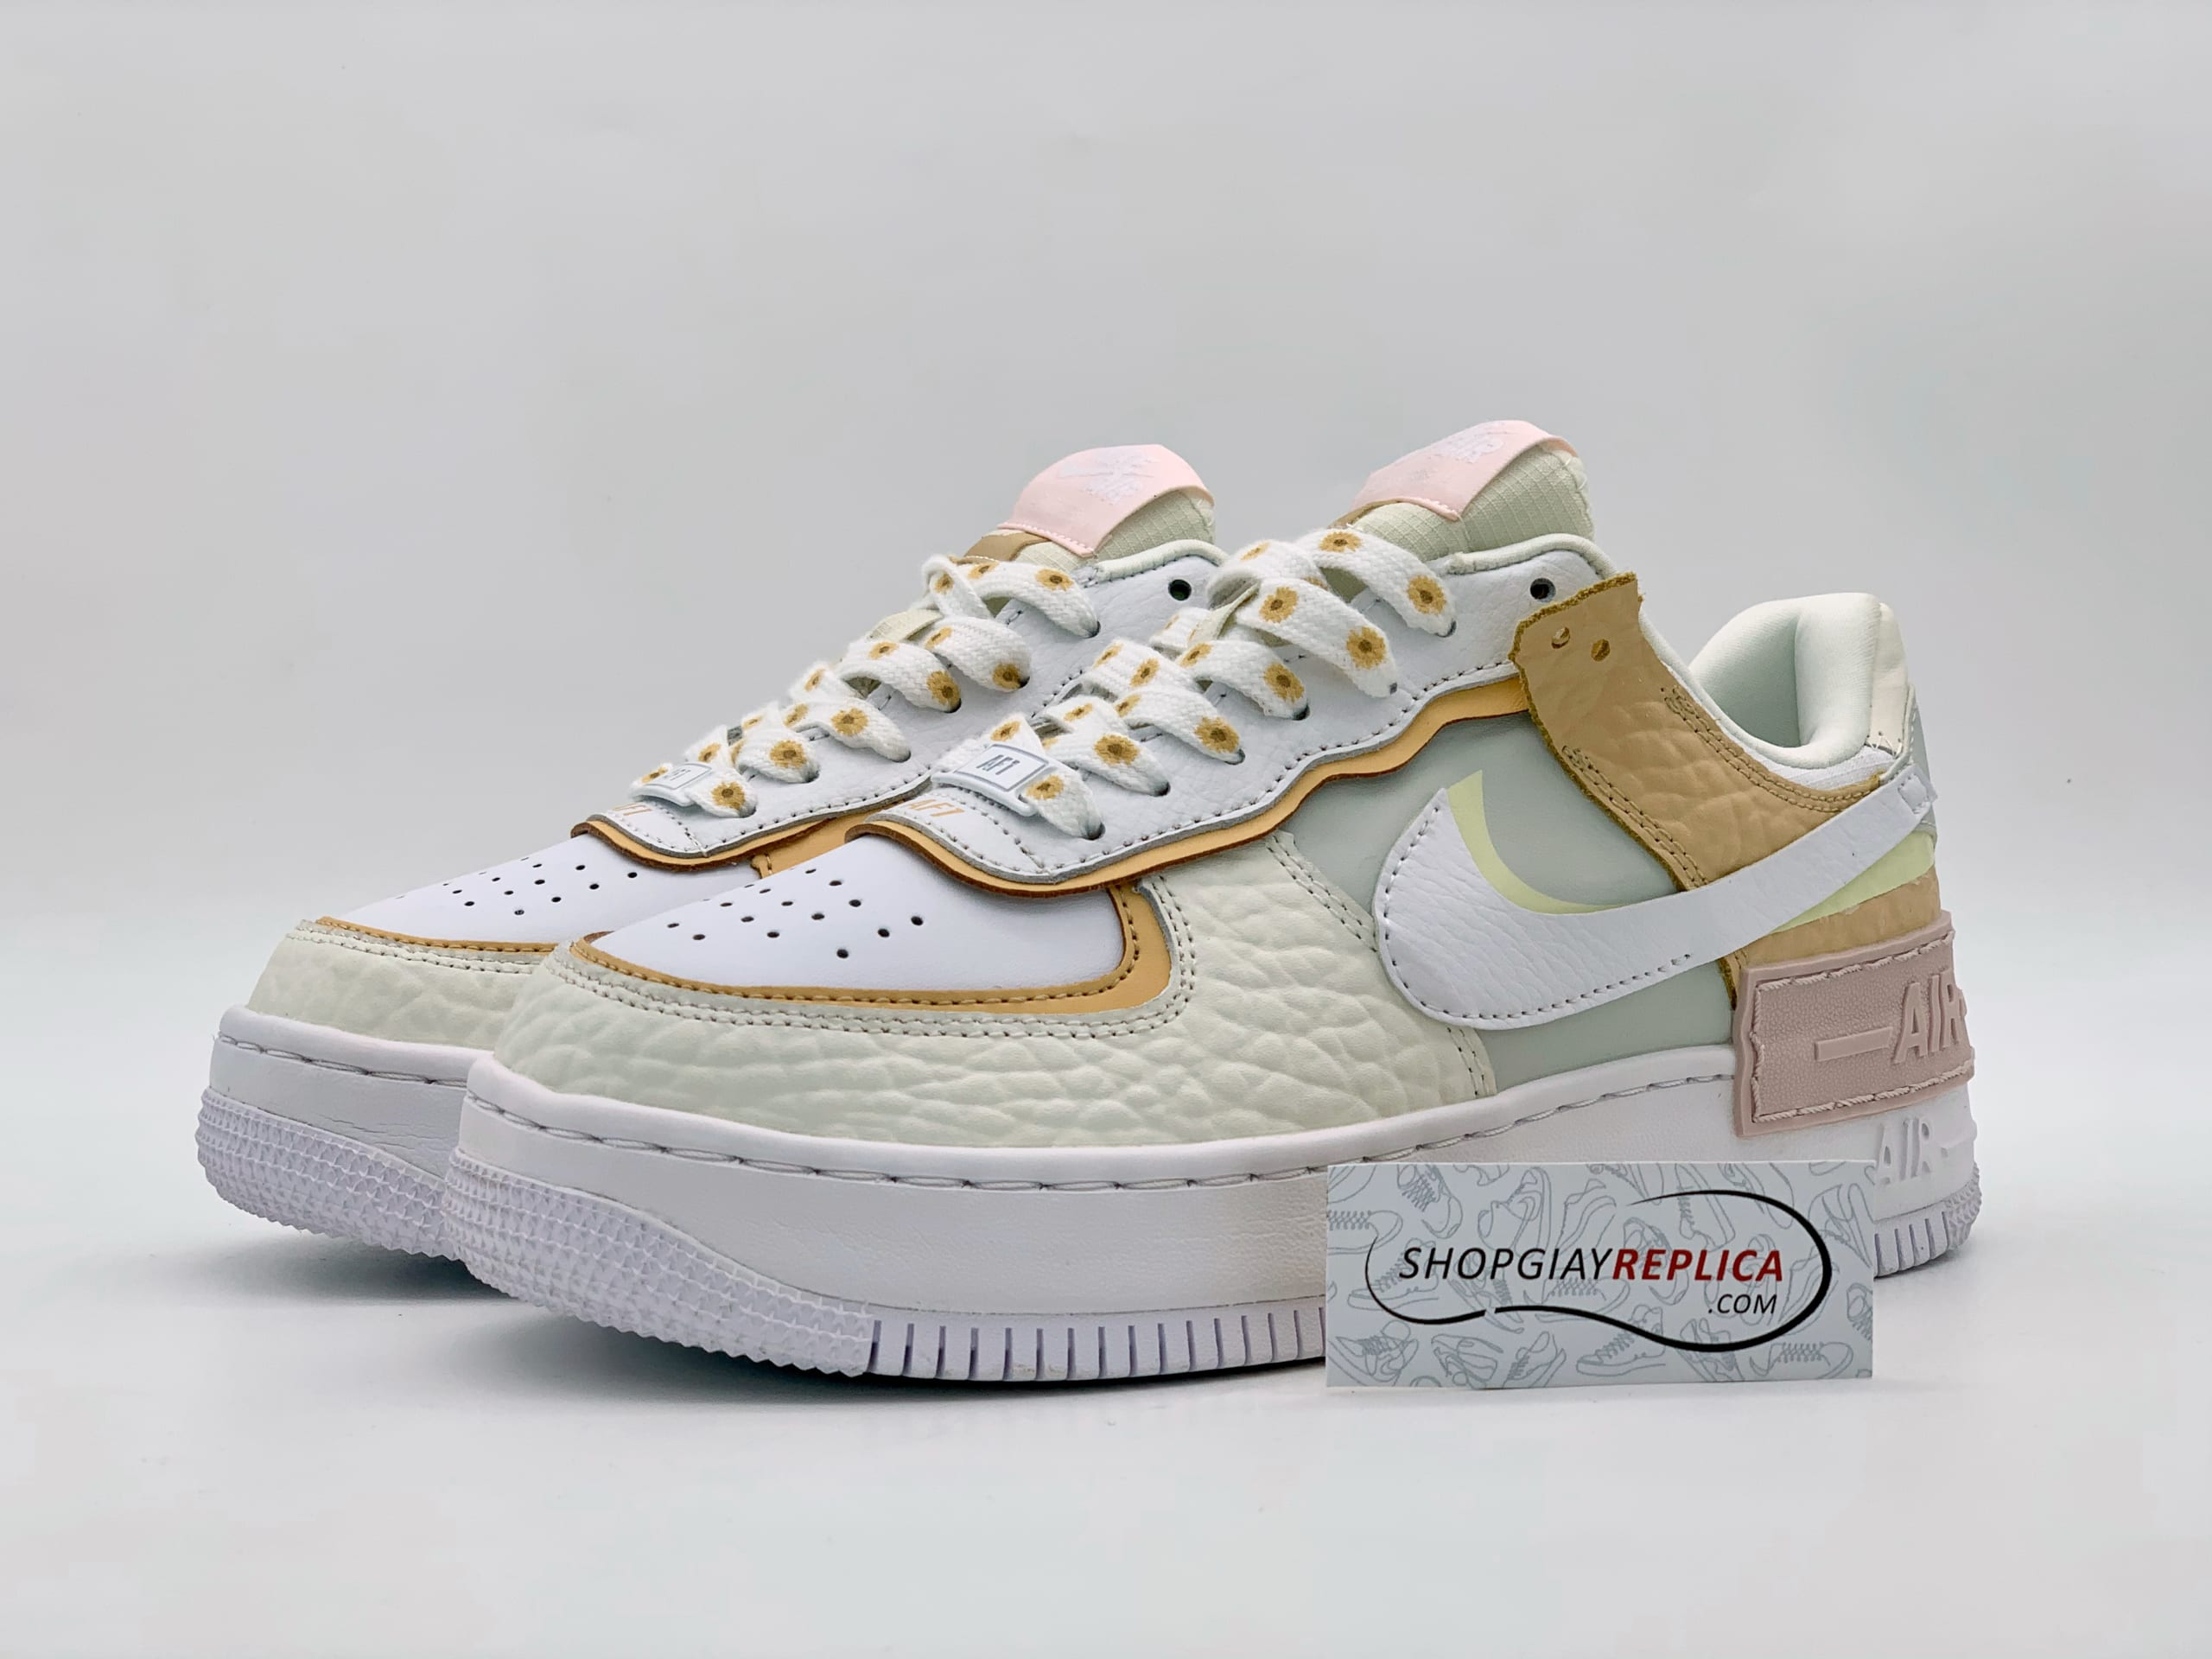 Lsrxdmkxtkbamm Giving off a deconstructive vibe with added materials, the nike air force 1 shadow showcases a premium suede and tumbled leather partnered with a doubled edge sword in the swoosh, heel, and back tab. https shopgiayreplica com giay nike air force 1 shadow spruce aura